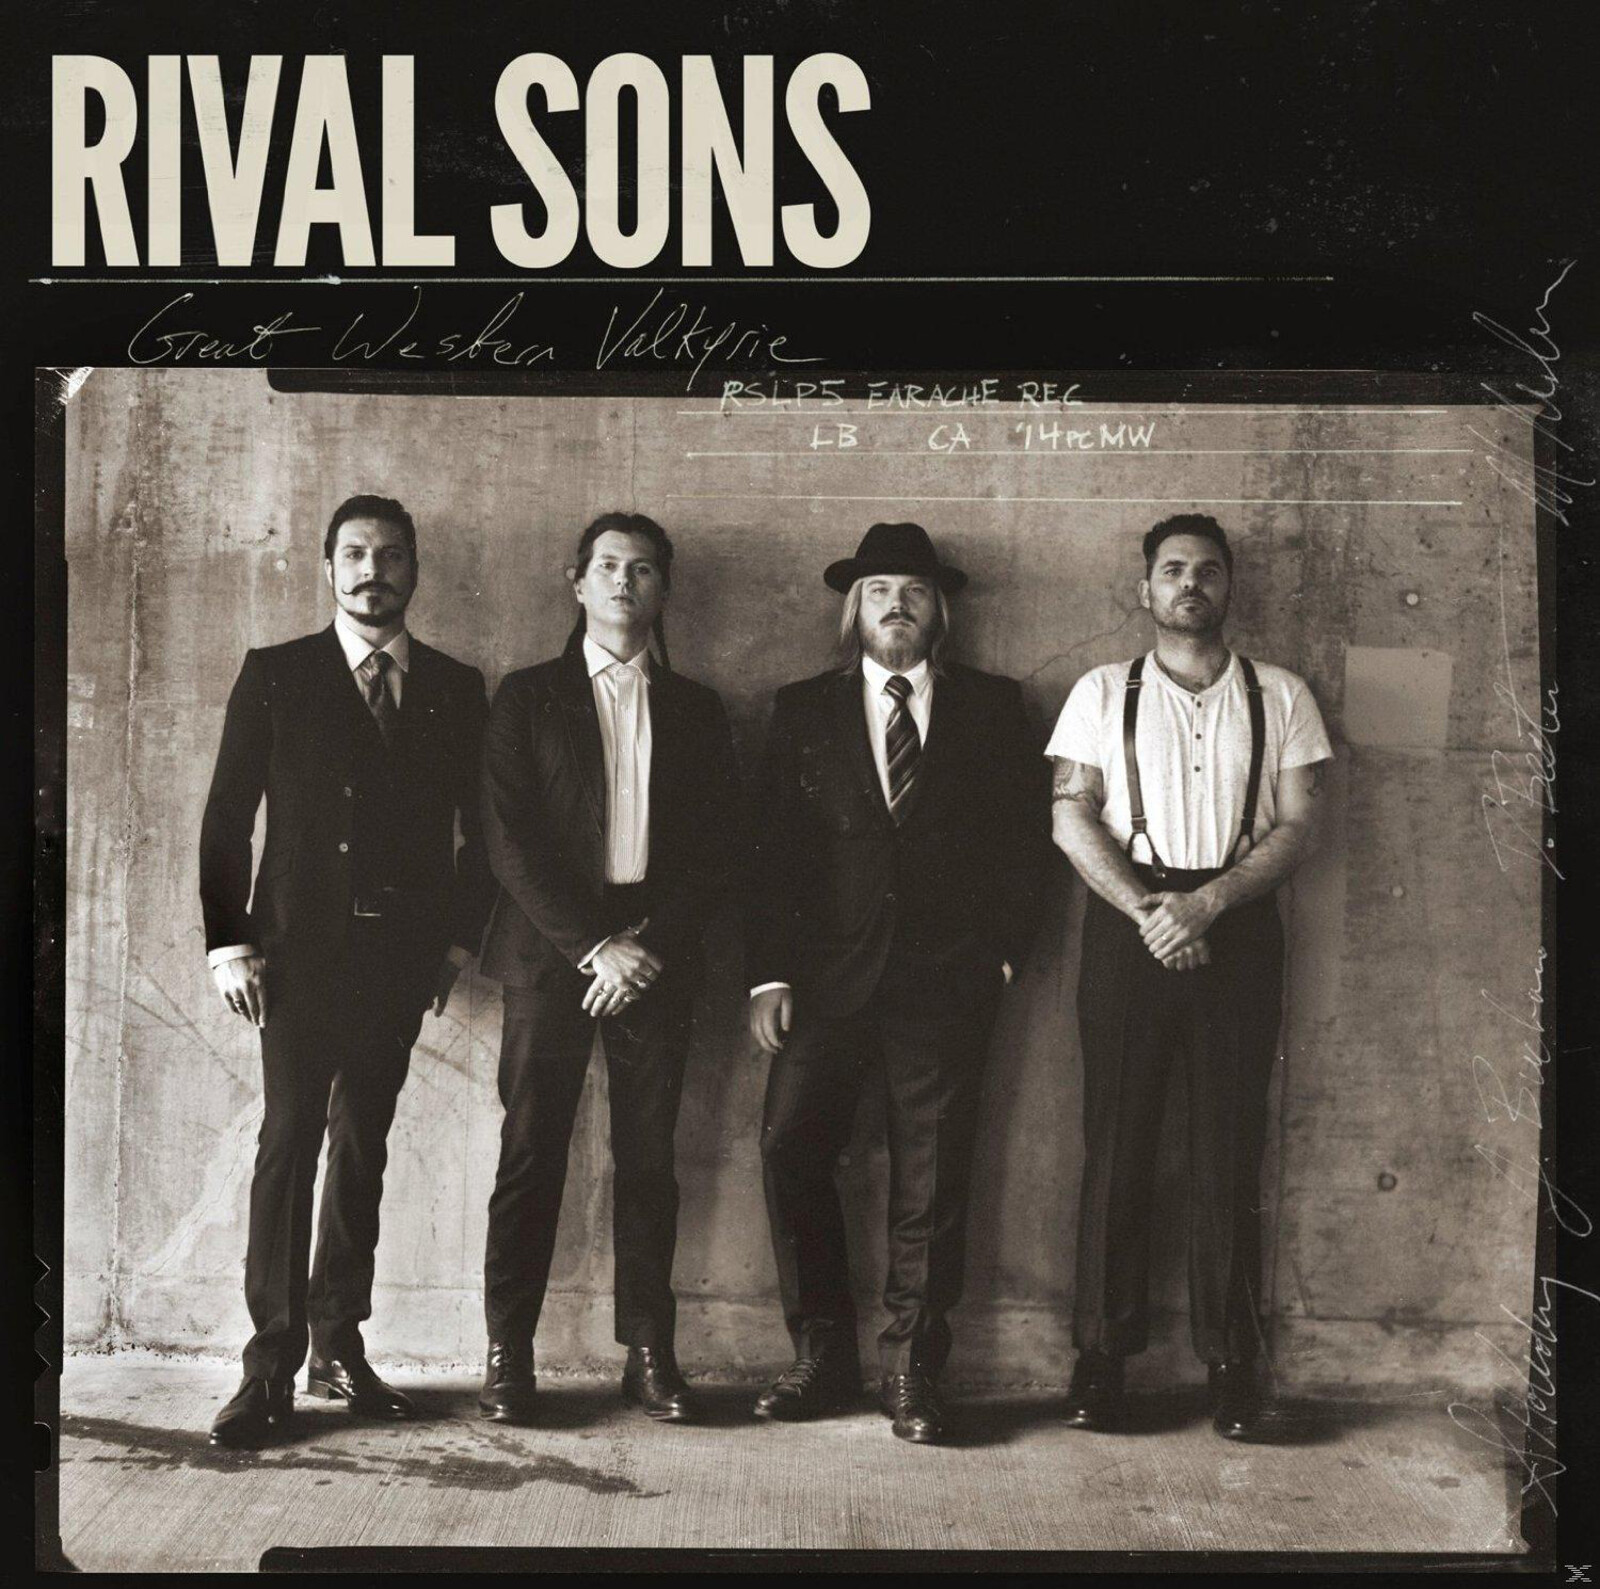 Rival Sons - Great Western Valkyrie (Double Vinyl Gatefold, Bla [LP + Download]